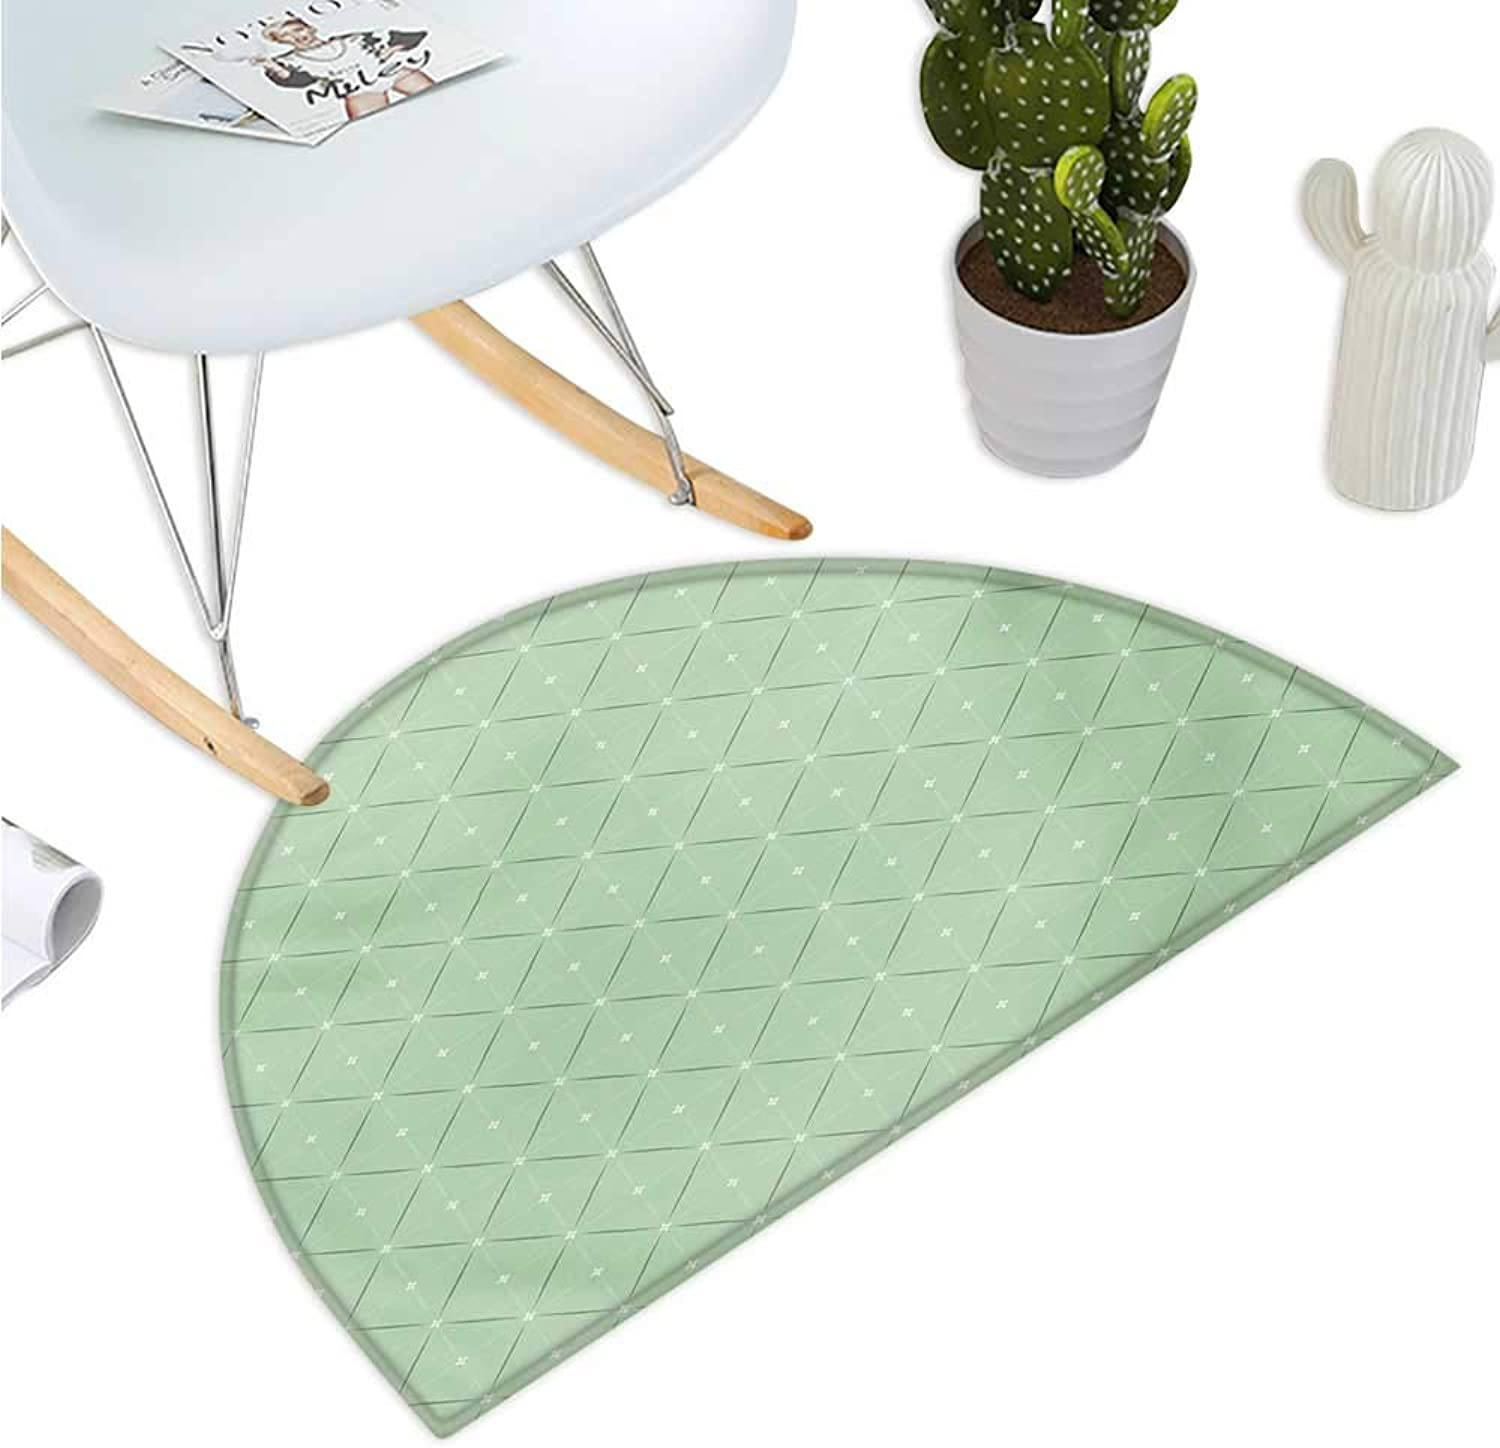 Abstract Semicircular Cushion Rhombus and Squares Pattern with Stripes and Flowers Geometric Arrangement Halfmoon doormats H 51.1  xD 76.7  Pale Green White